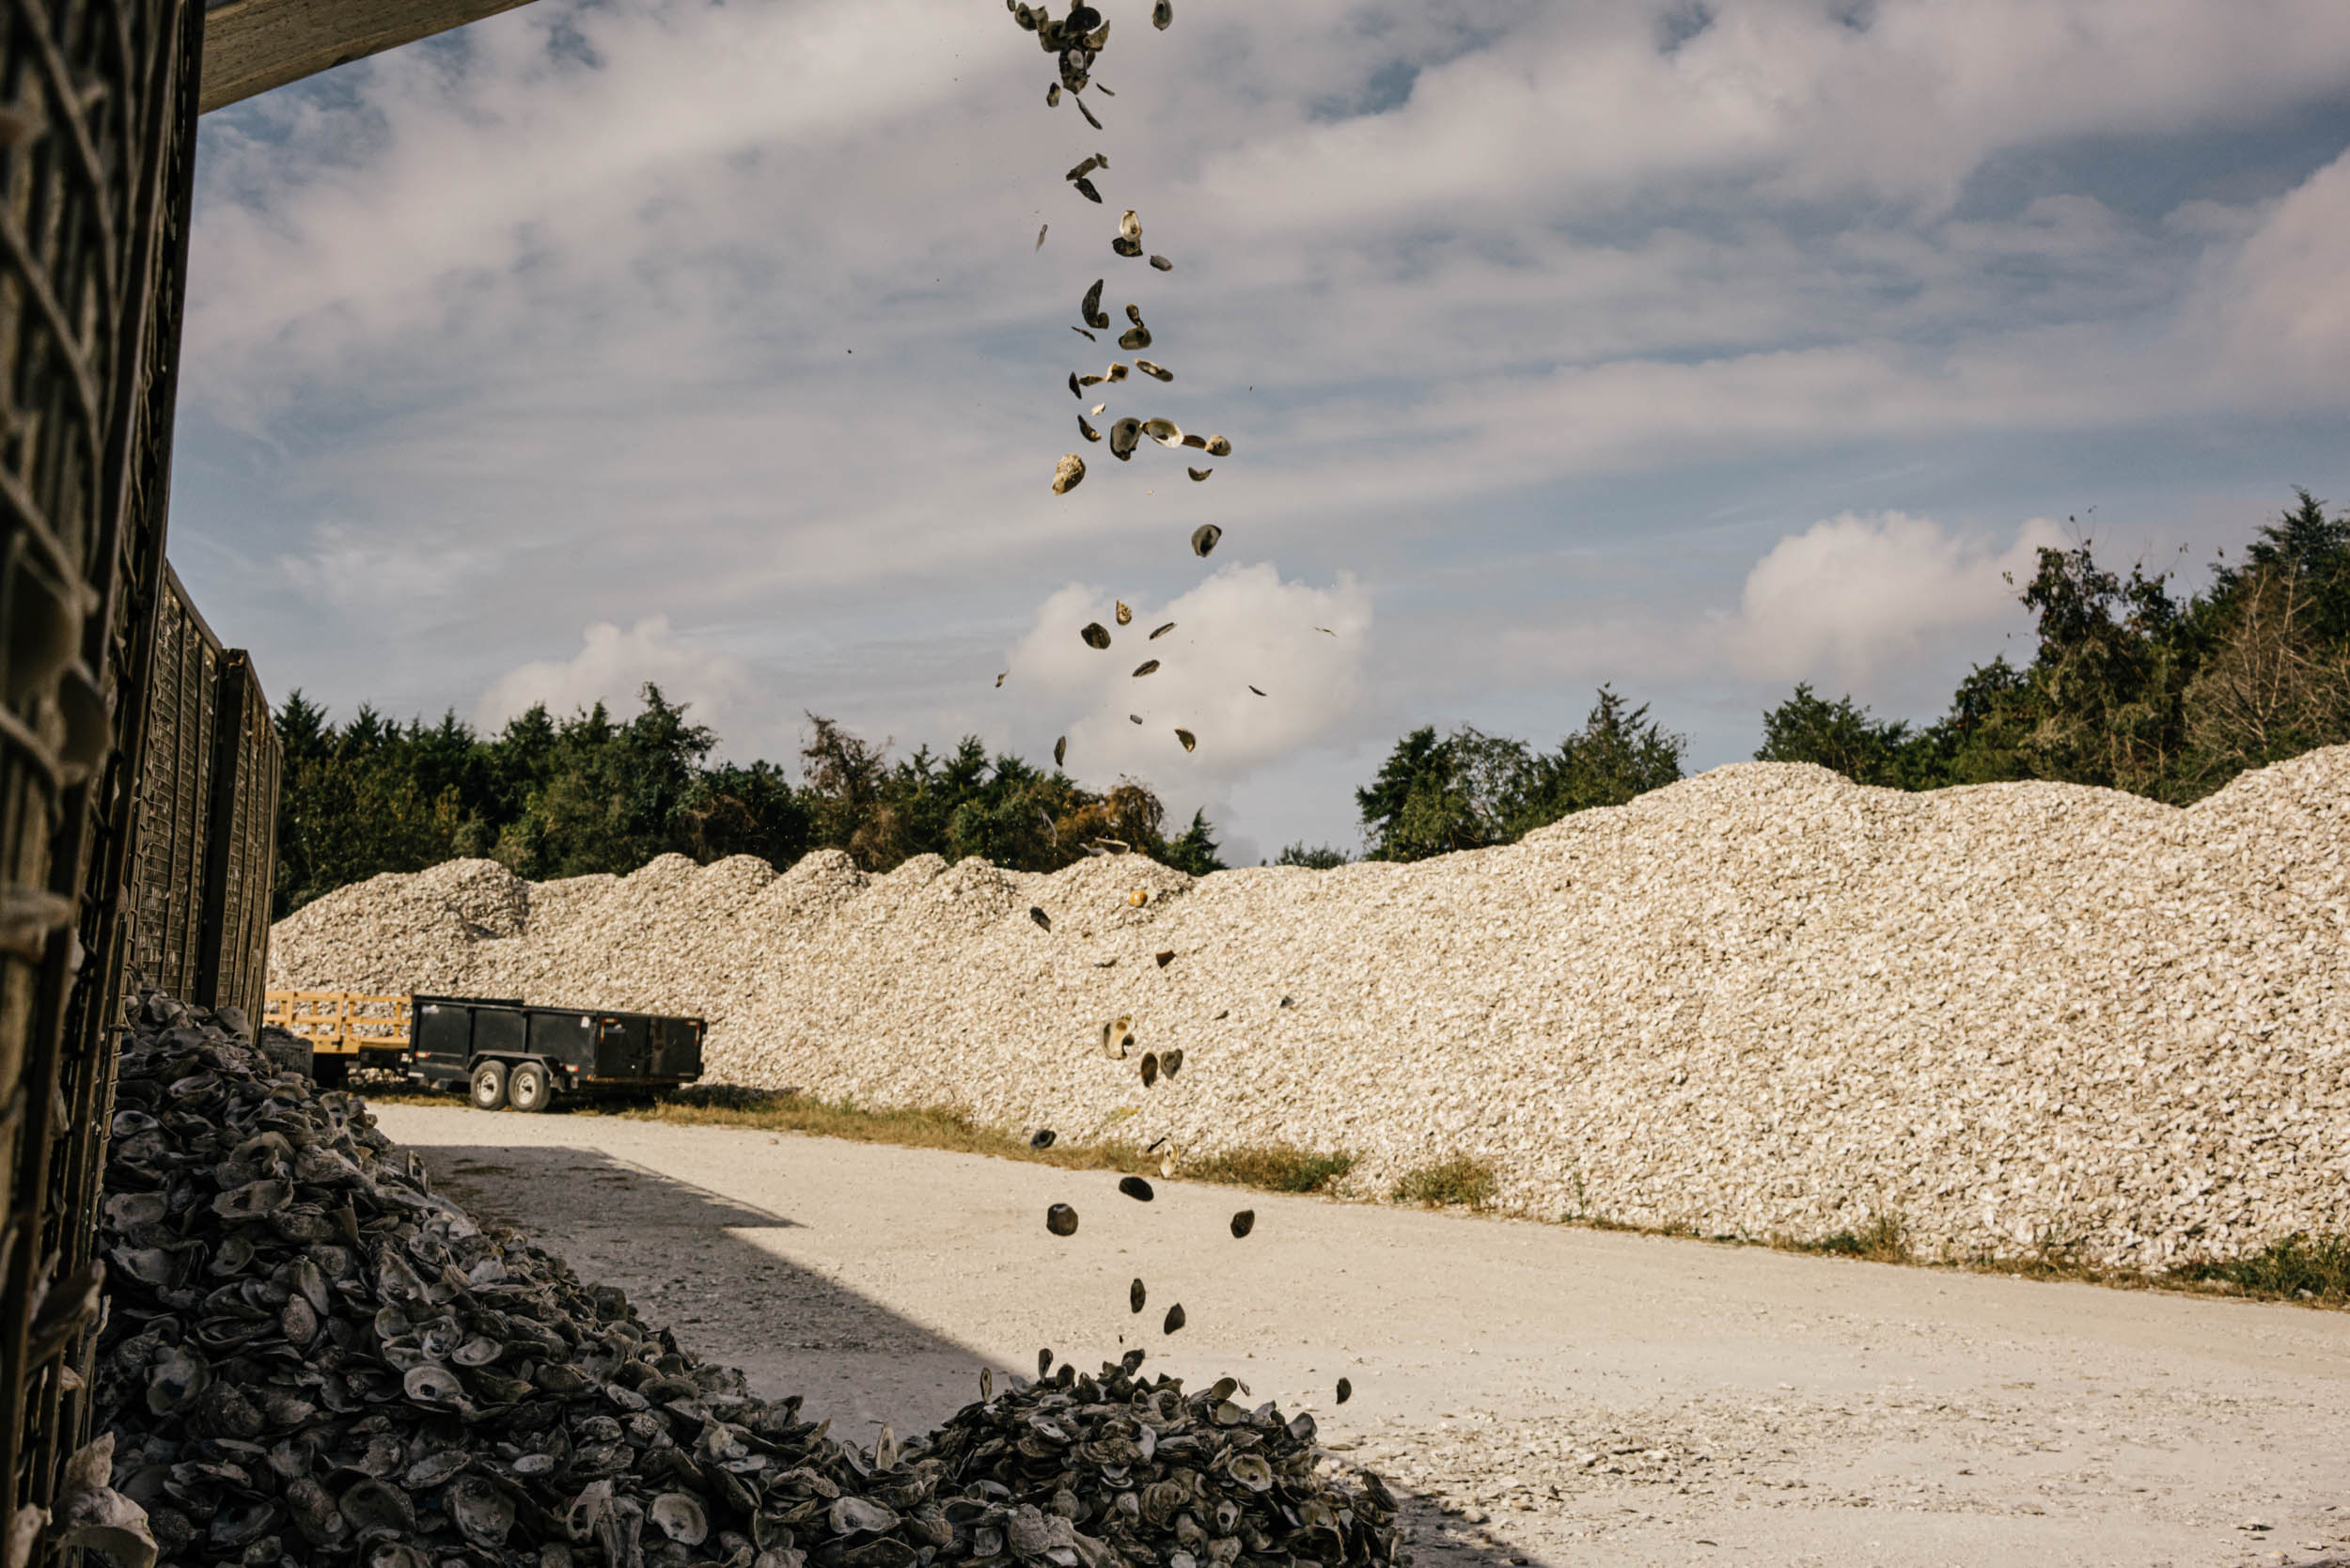 oyster shells being cleaned for use in the Chesapeake bay